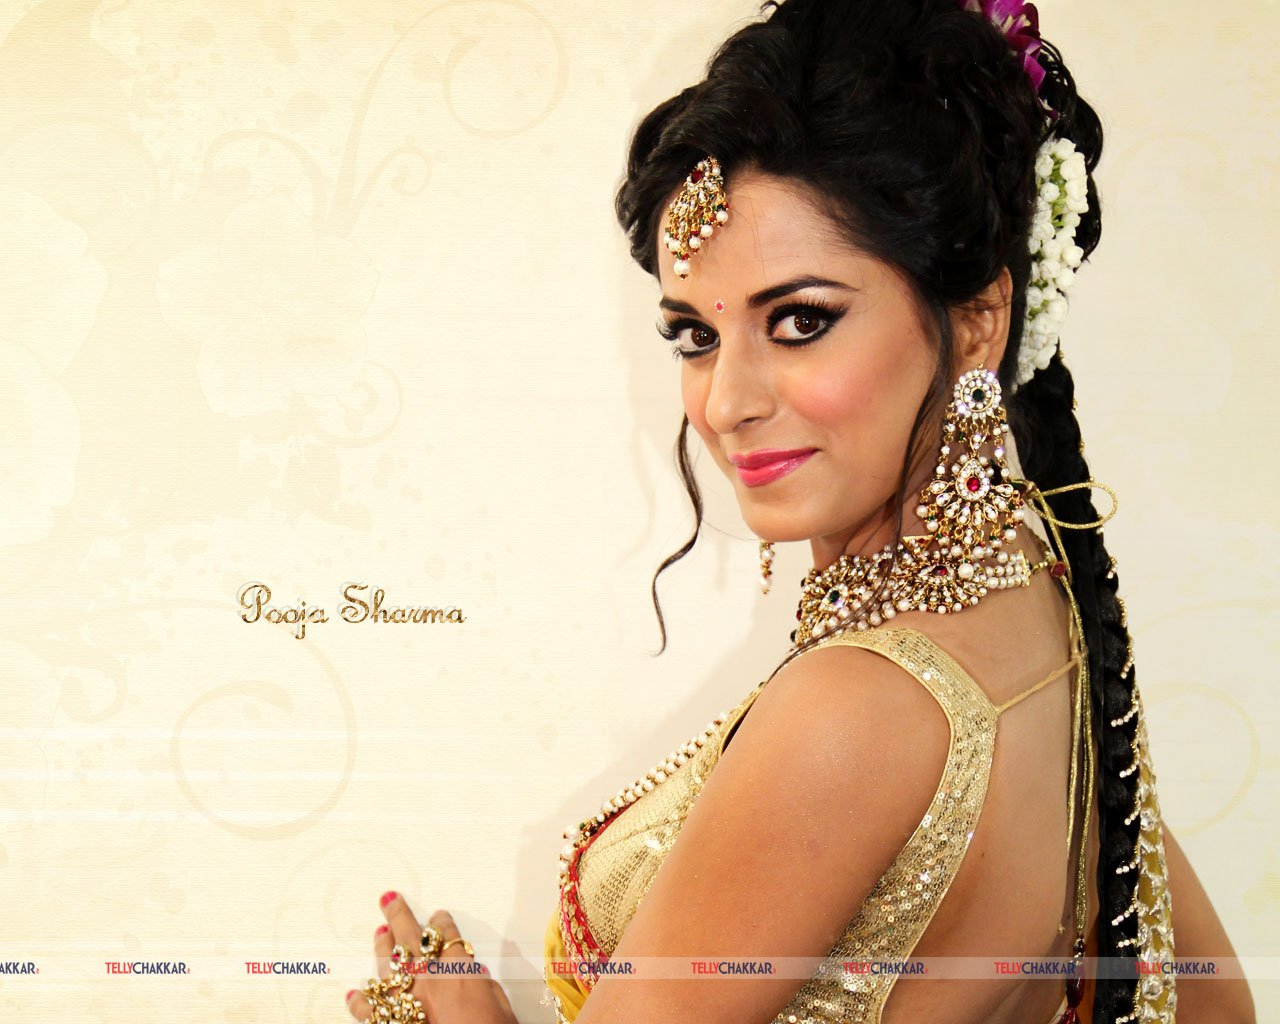 Pooja sharma01 1280x1024g thecheapjerseys Images